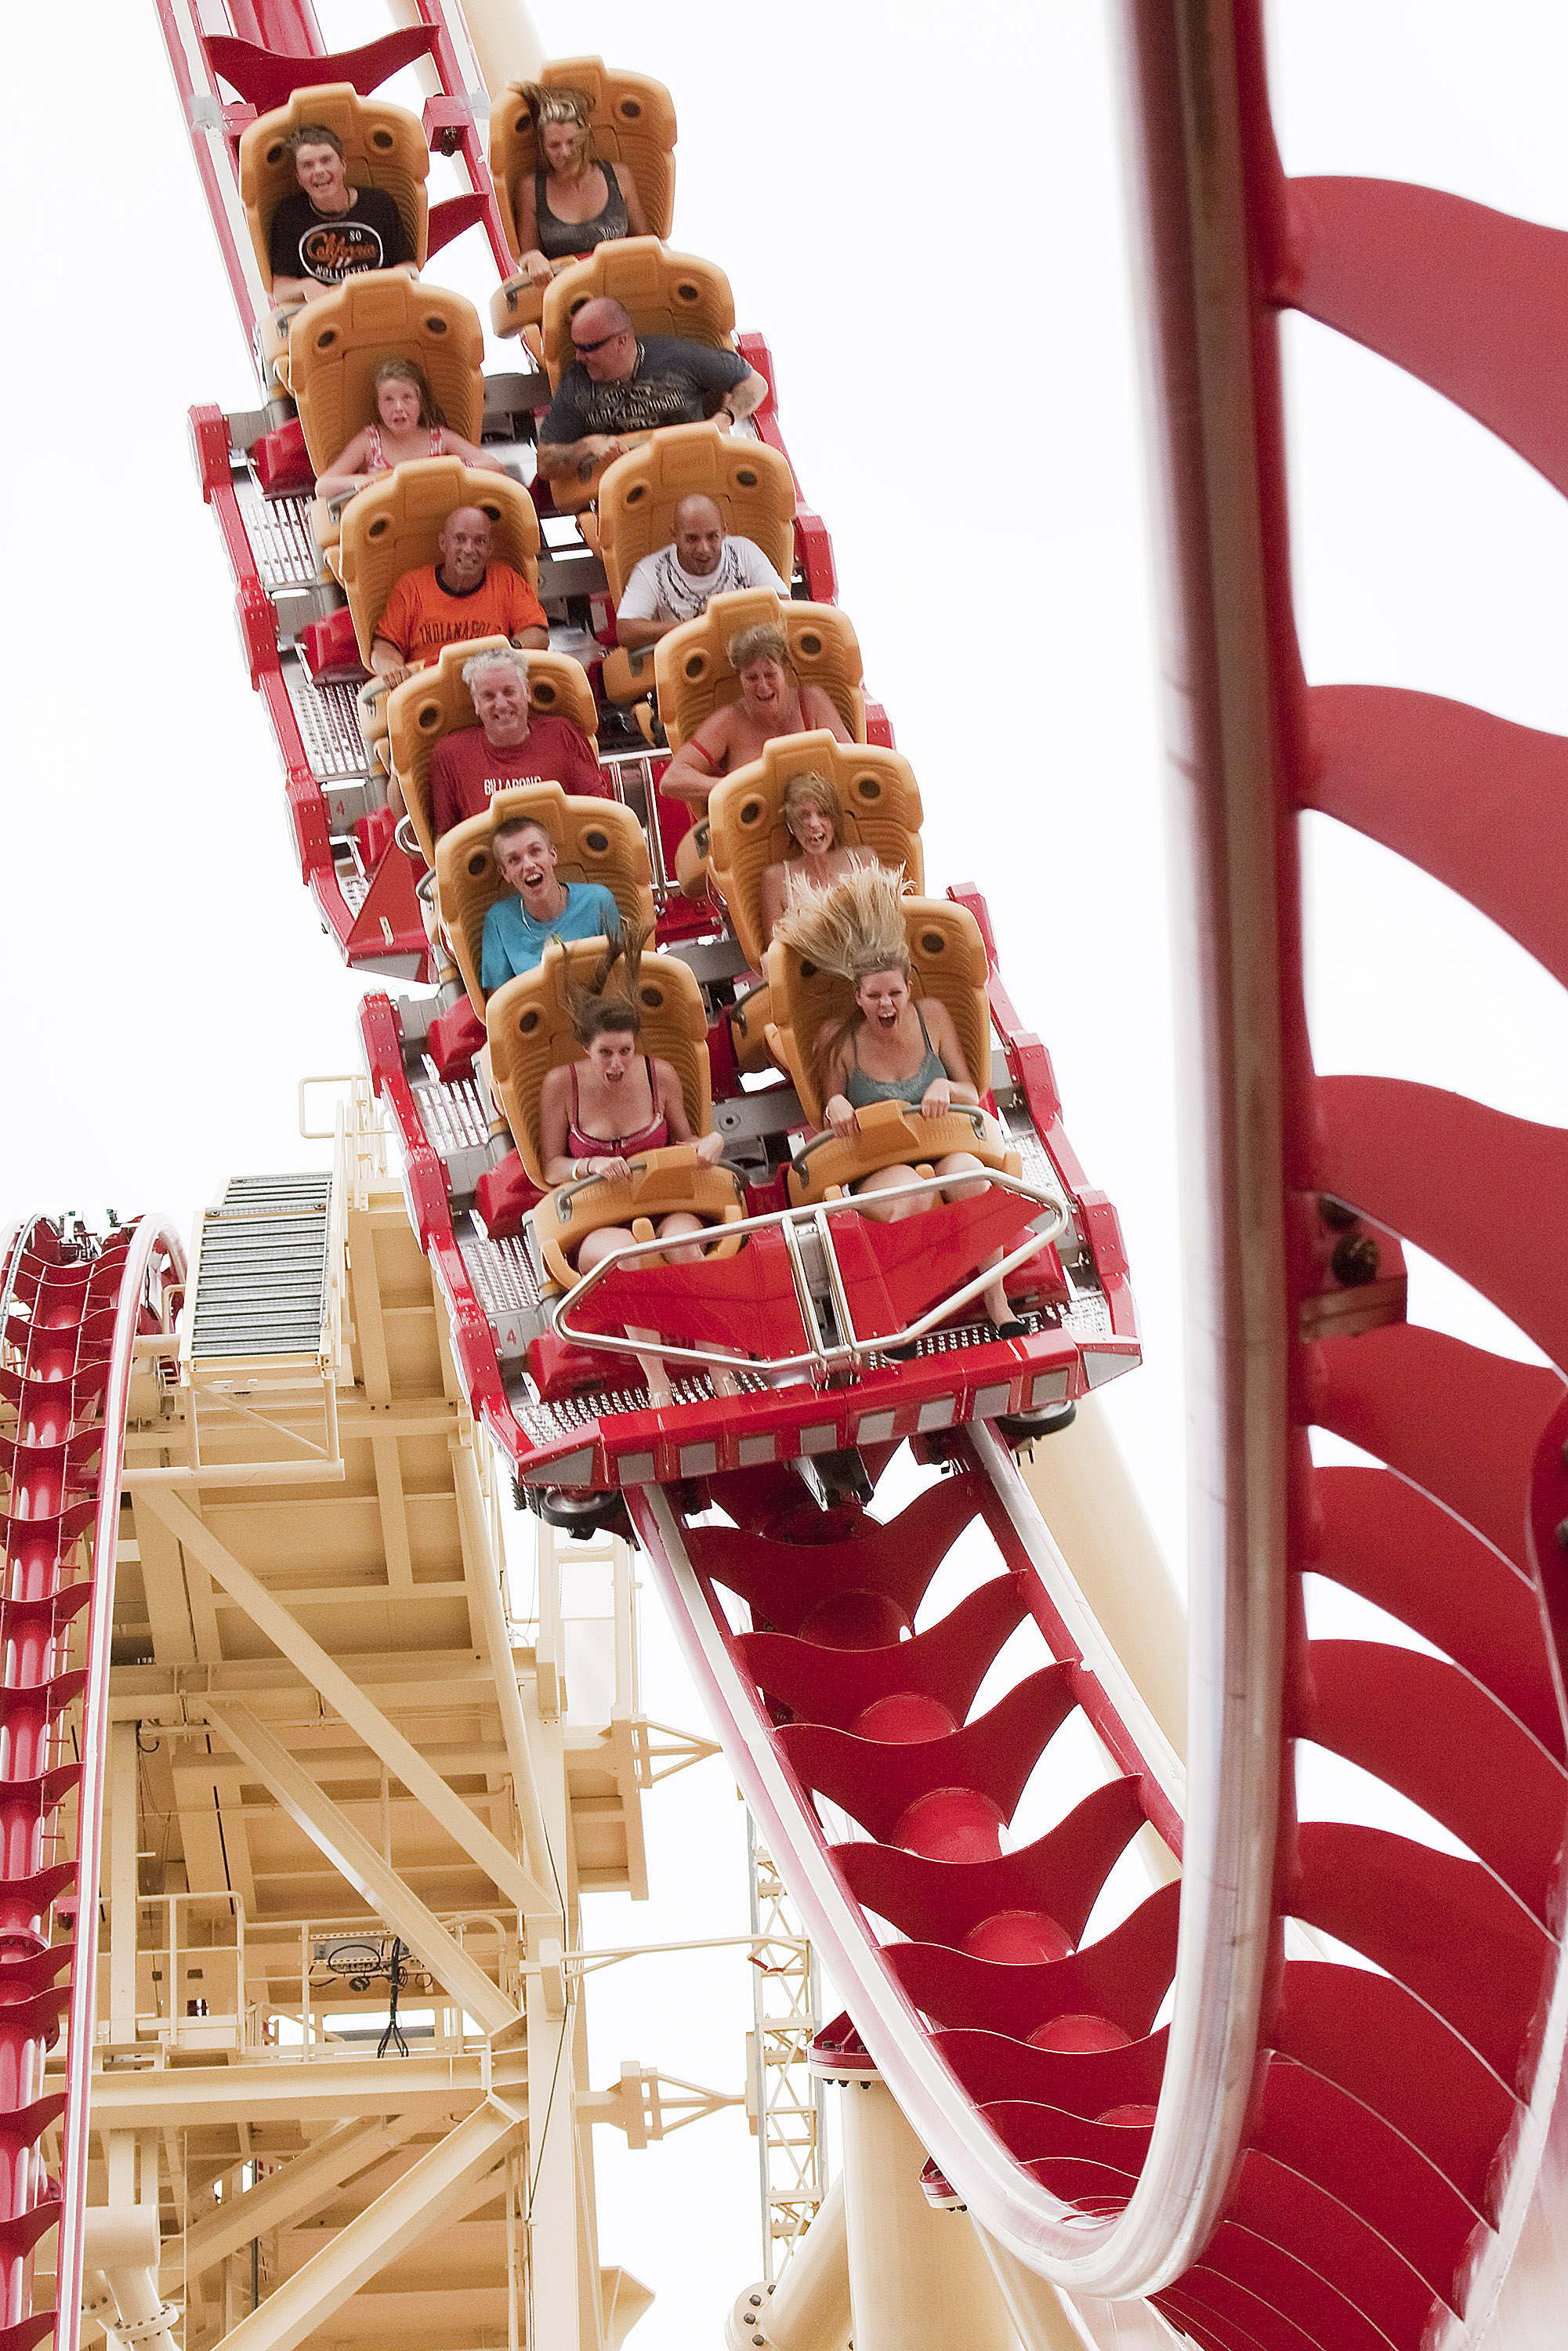 Brave Universal's Hollywood Rip Ride Rockit roller coaster. (Photo: Courtesy of Universal Studios Orlando)